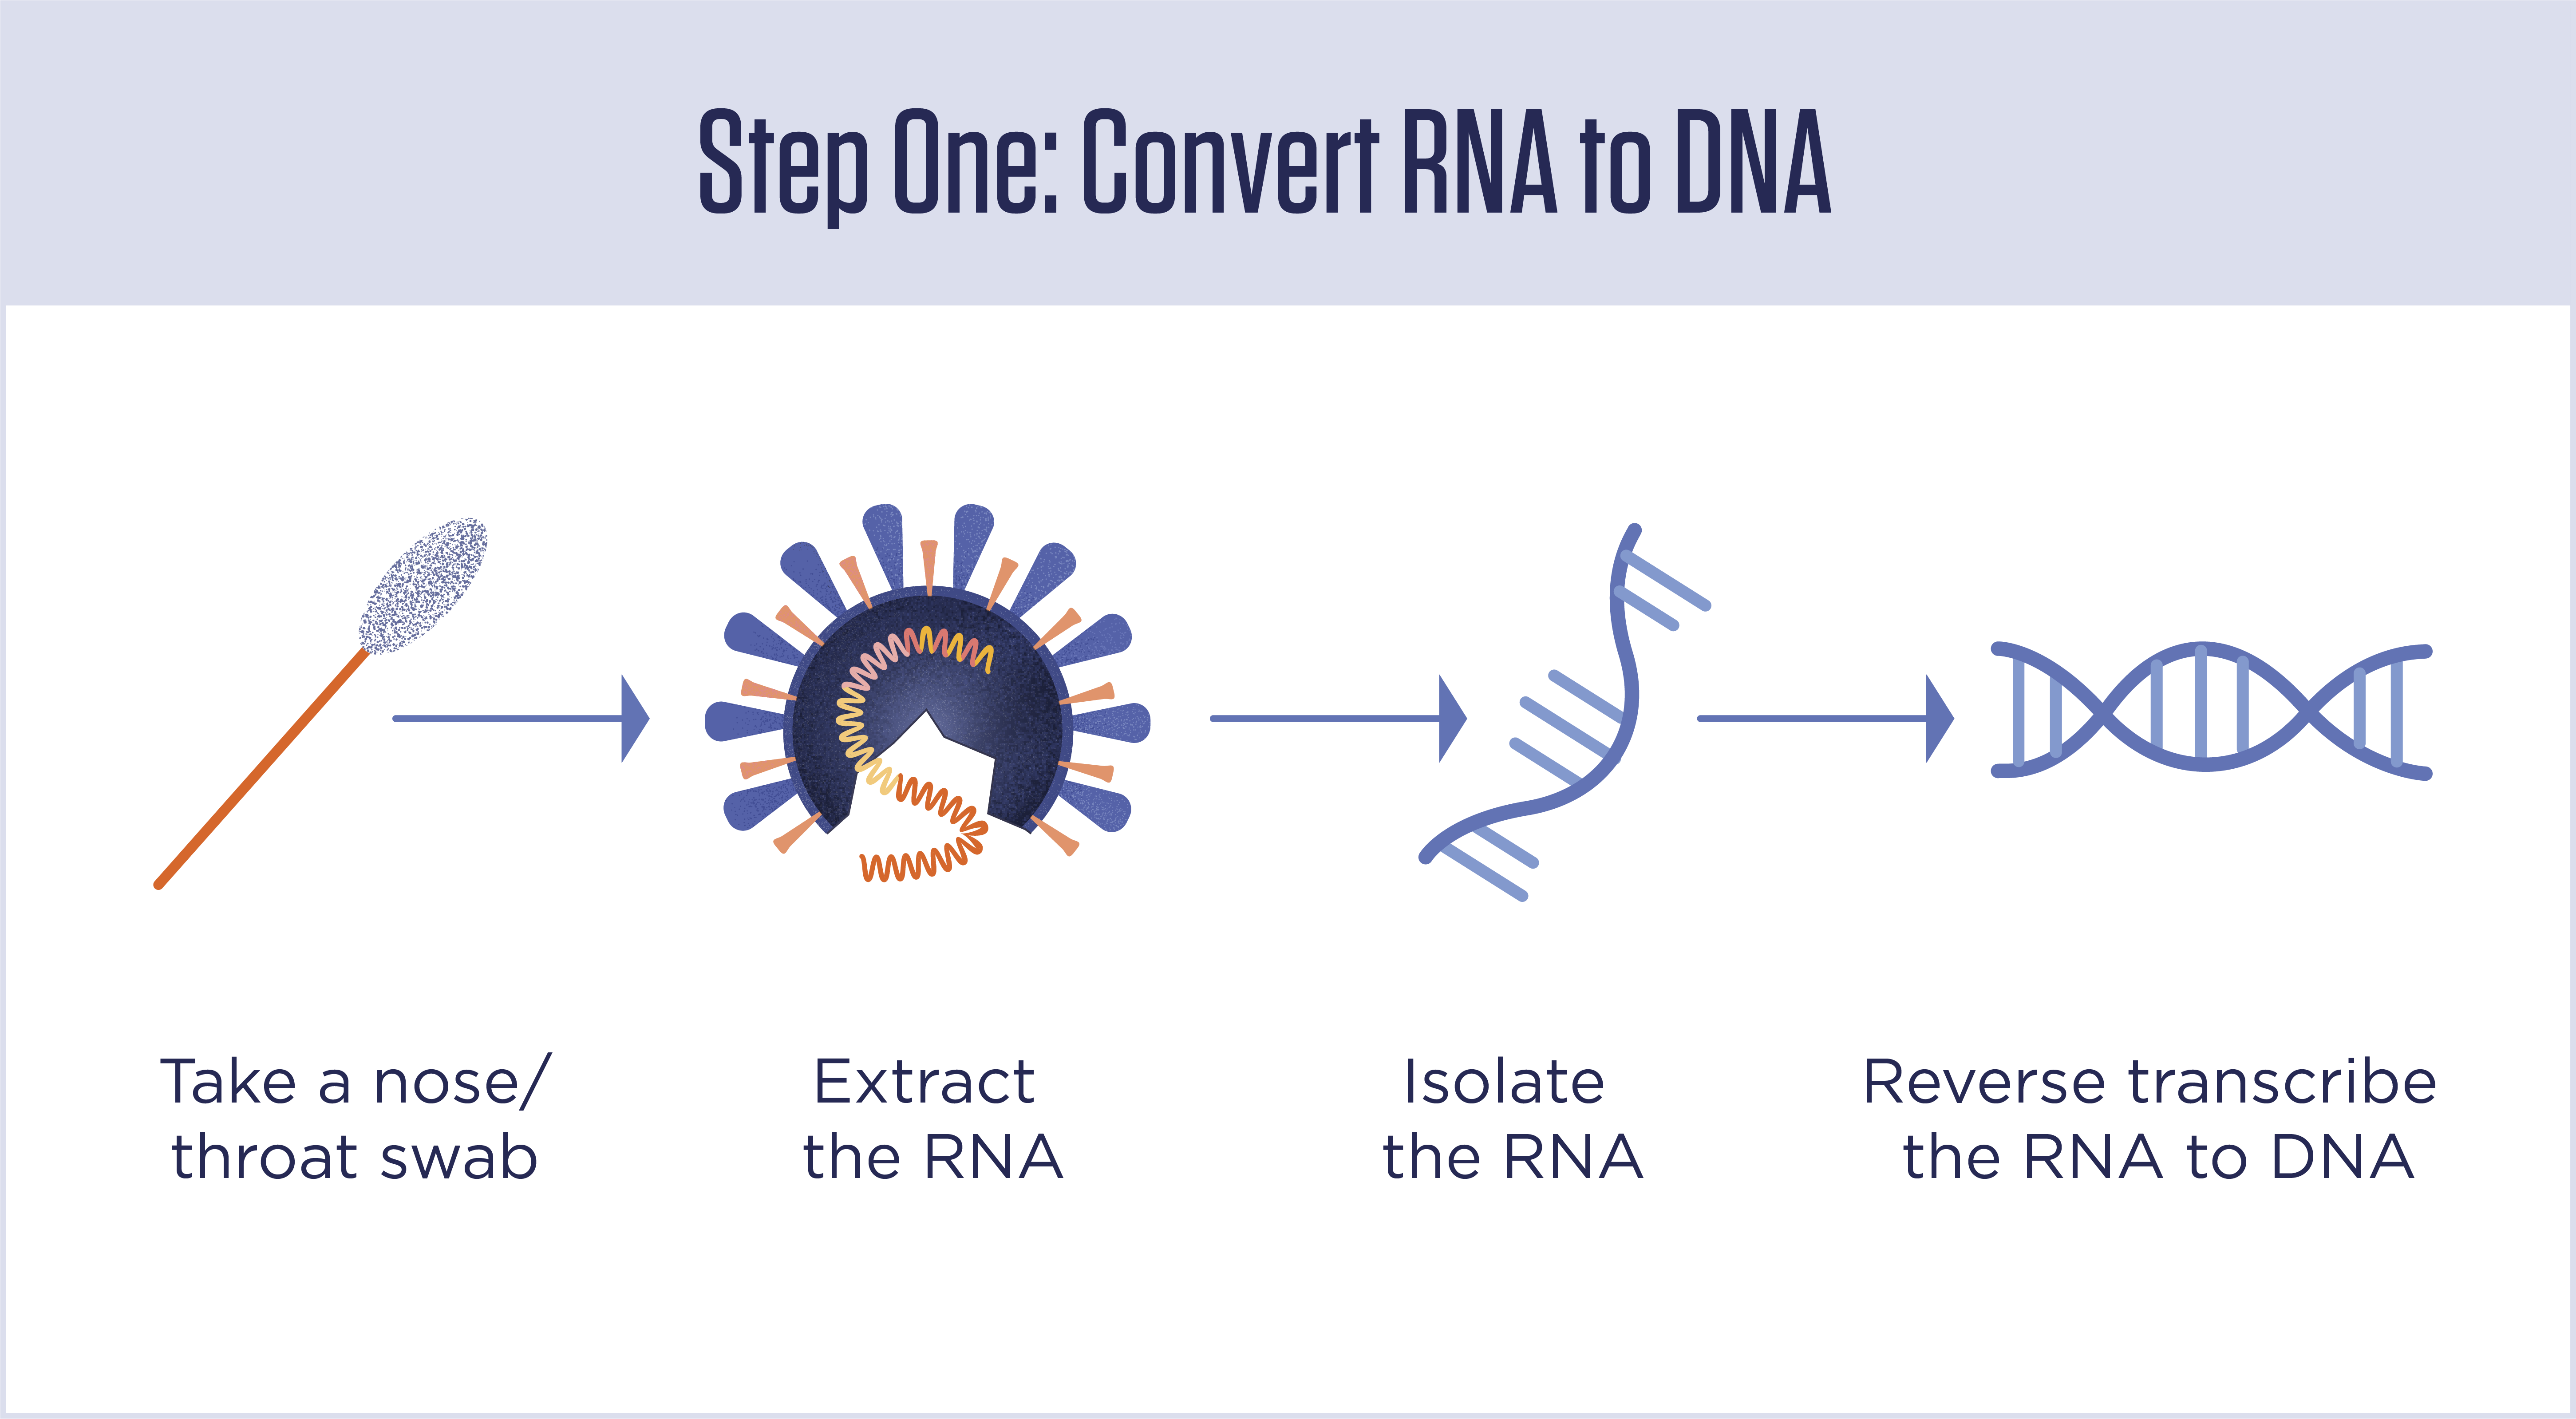 A procedural diagram with icons representing components of the testing process: taking a nasal swab, extracting the RNA, isolating the RNA, and reverse transcribing the RNA to DNA.